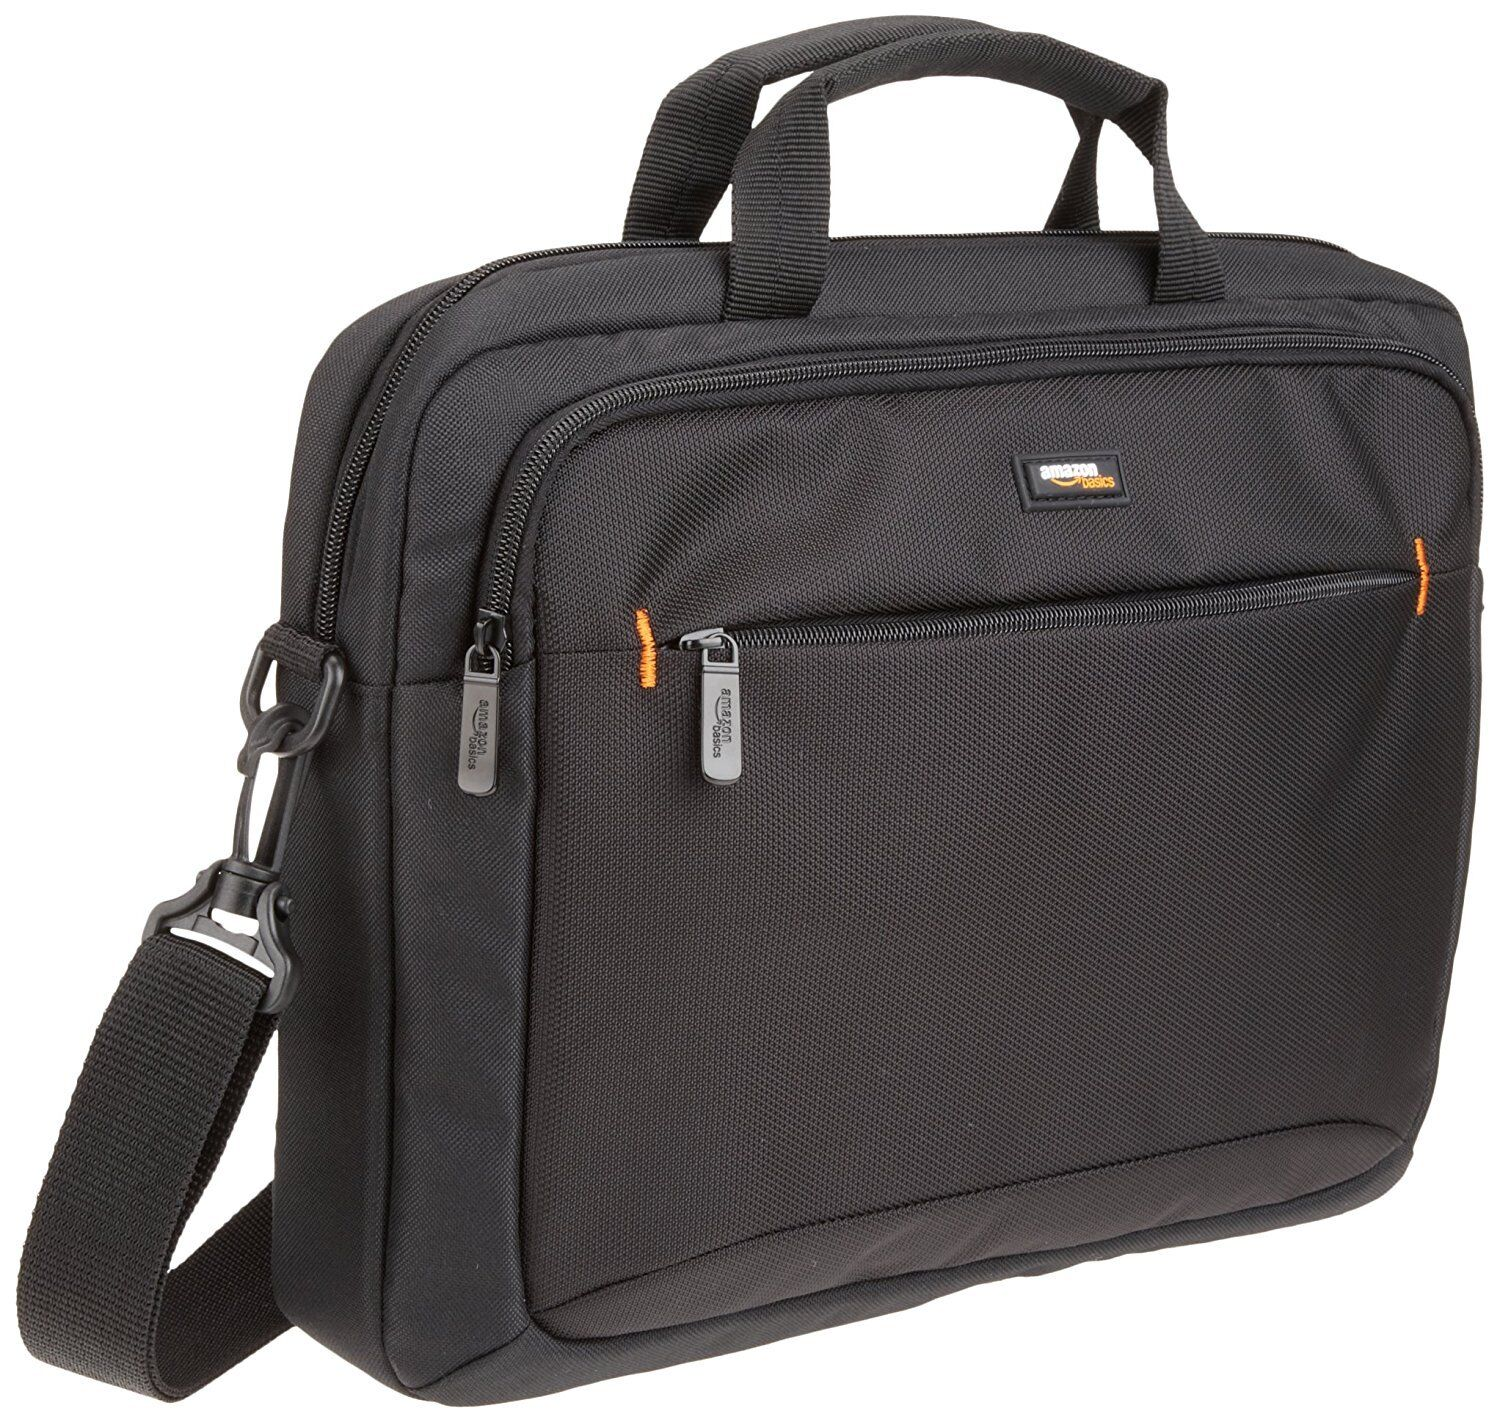 AmazonBasics 14-Inch Laptop and Tablet Bag